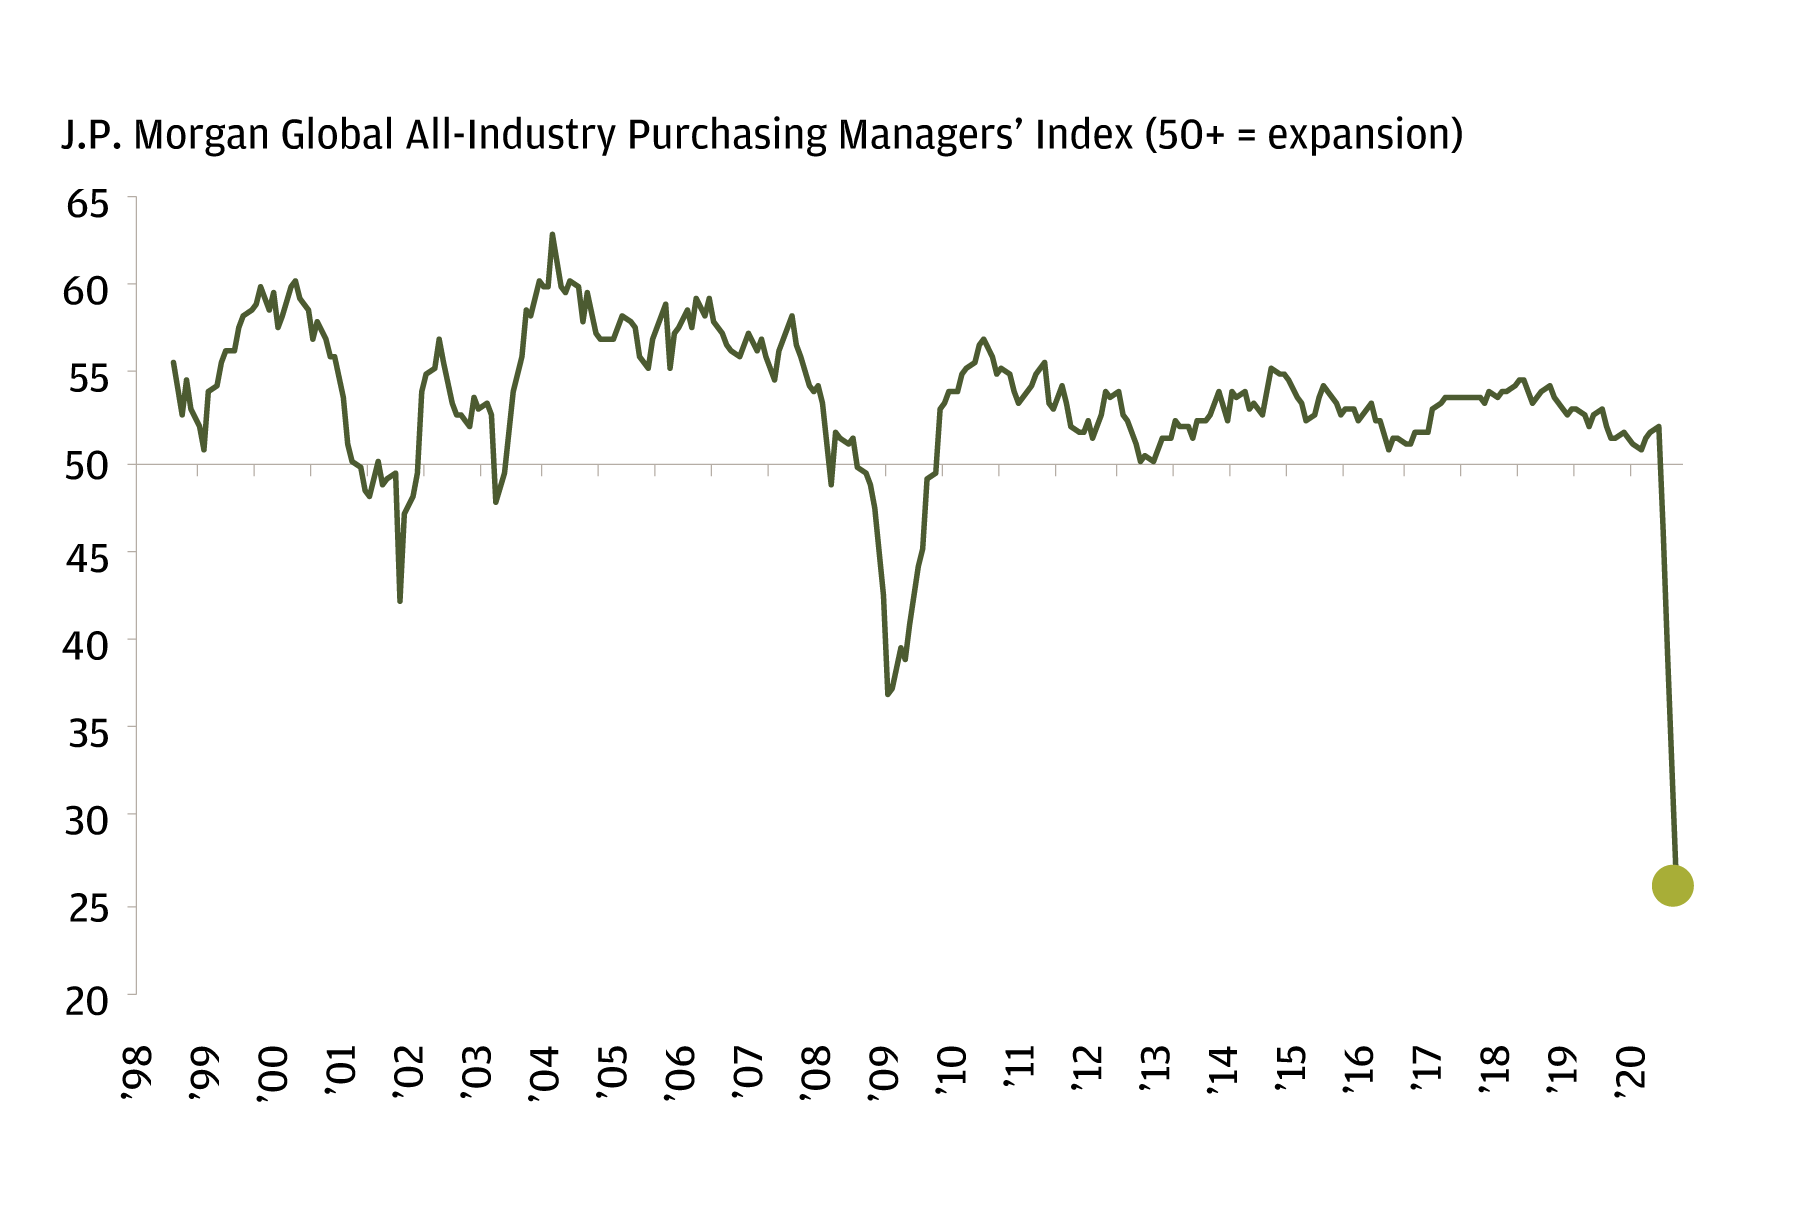 The chart displays the J.P. Morgan Global All-Industry Purchasing Managers' Index from 1998 through 2020. It indicates that global activity in April 2020 was the lowest across this time period.